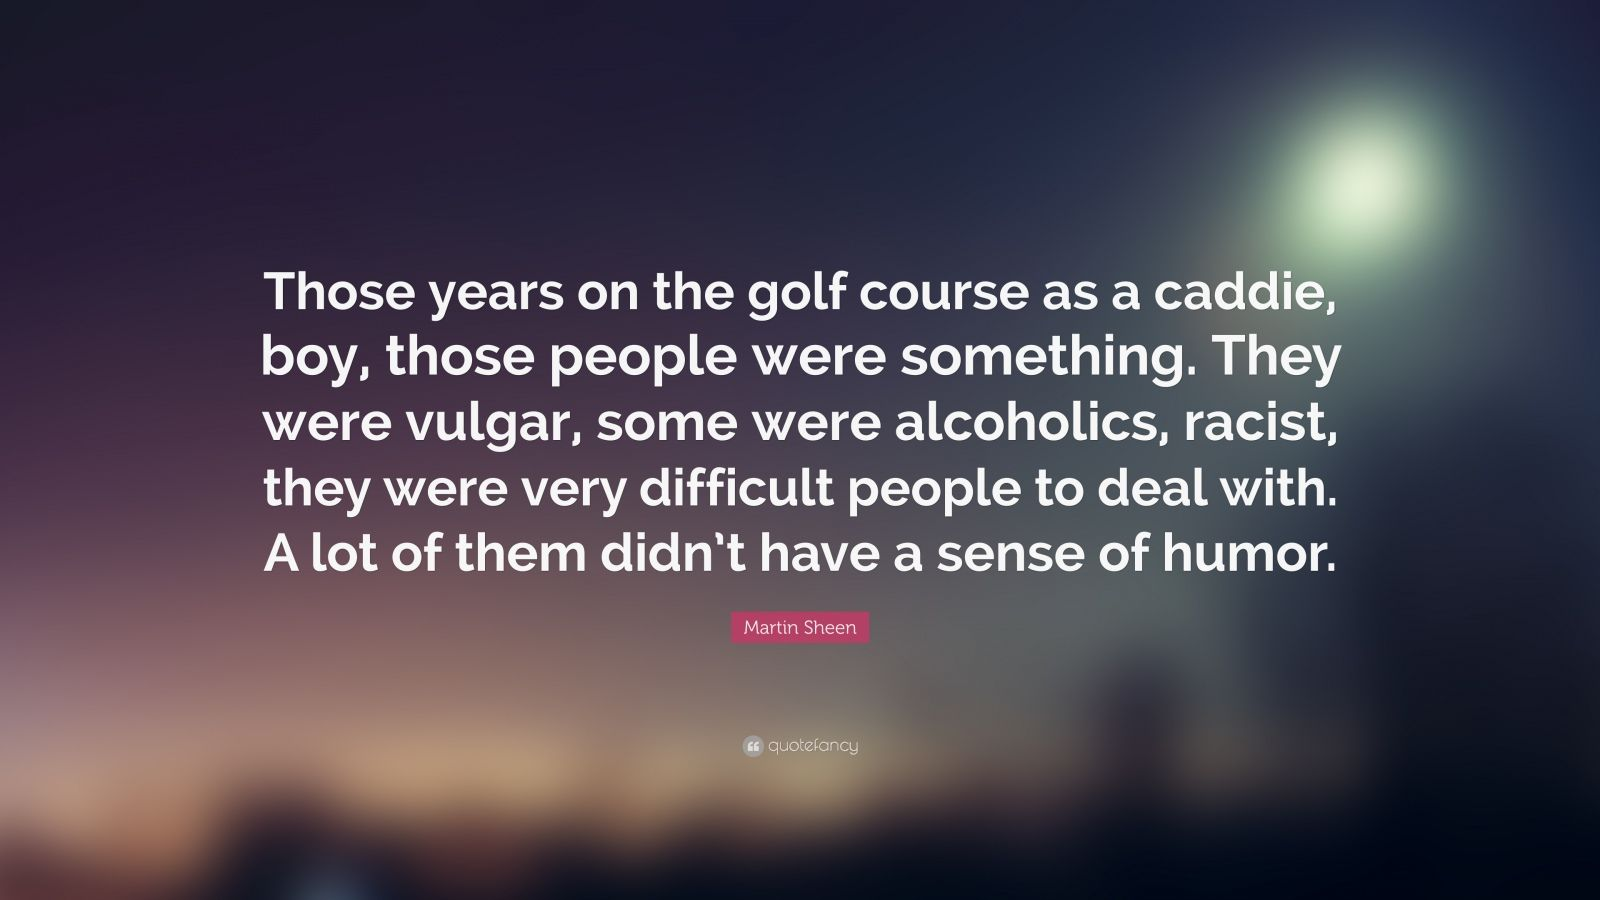 "Martin Sheen Quote: ""Those years on the golf course as a caddie, boy, those people were something. They were vulgar, some were alcoholics, racist, they were very difficult people to deal with. A lot of them didn't have a sense of humor."""